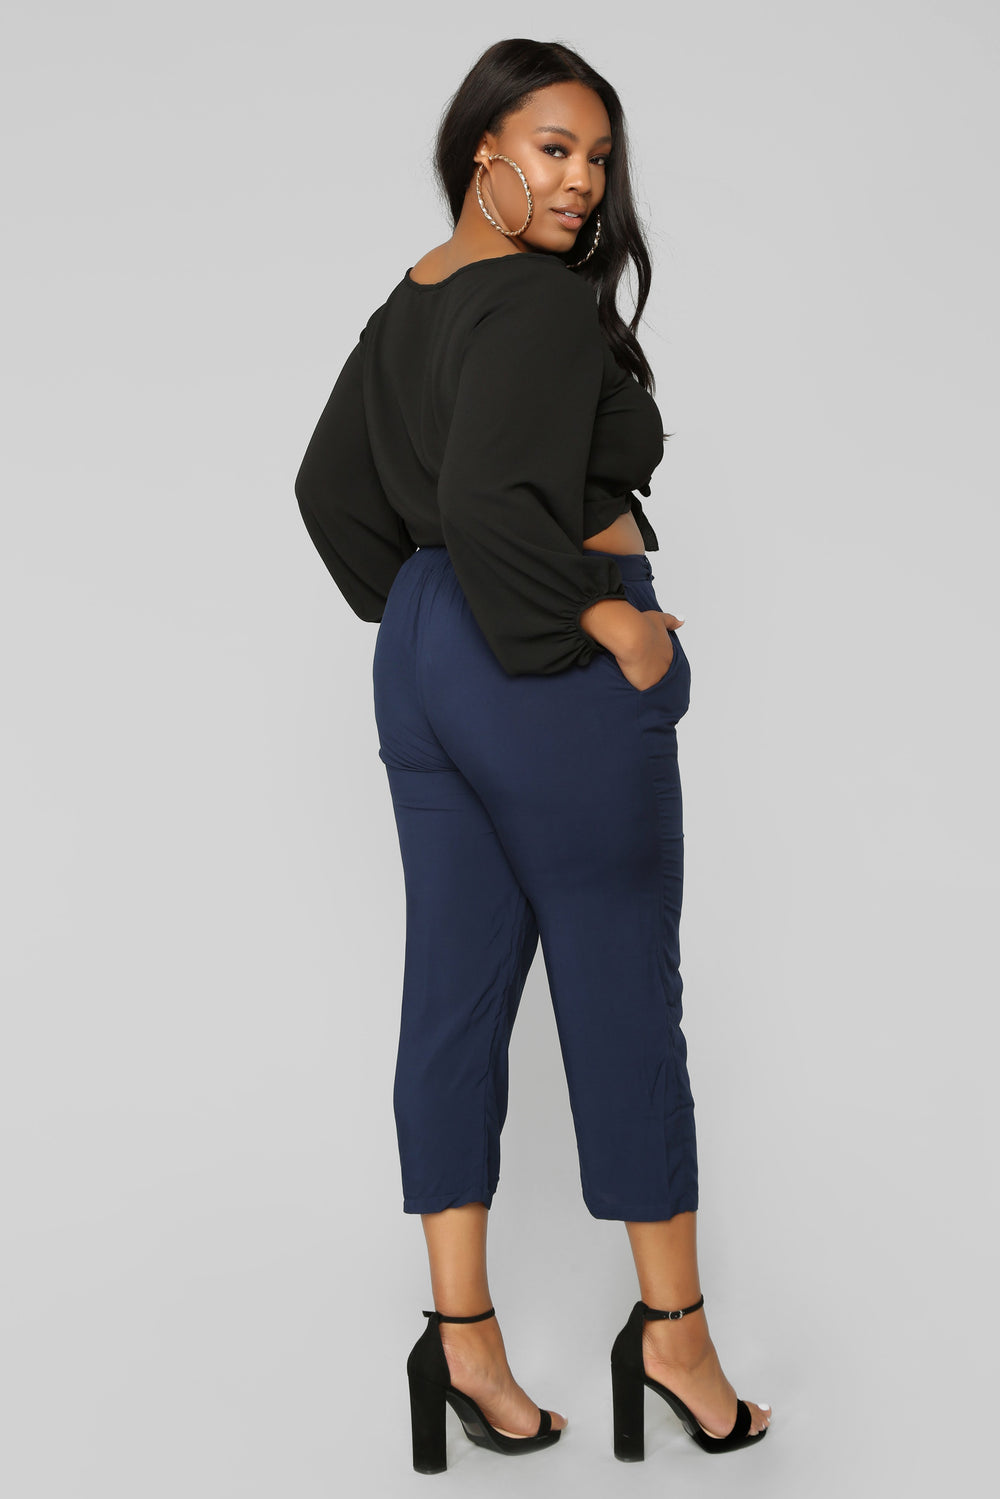 Work It Waist Tie Pants - Navy